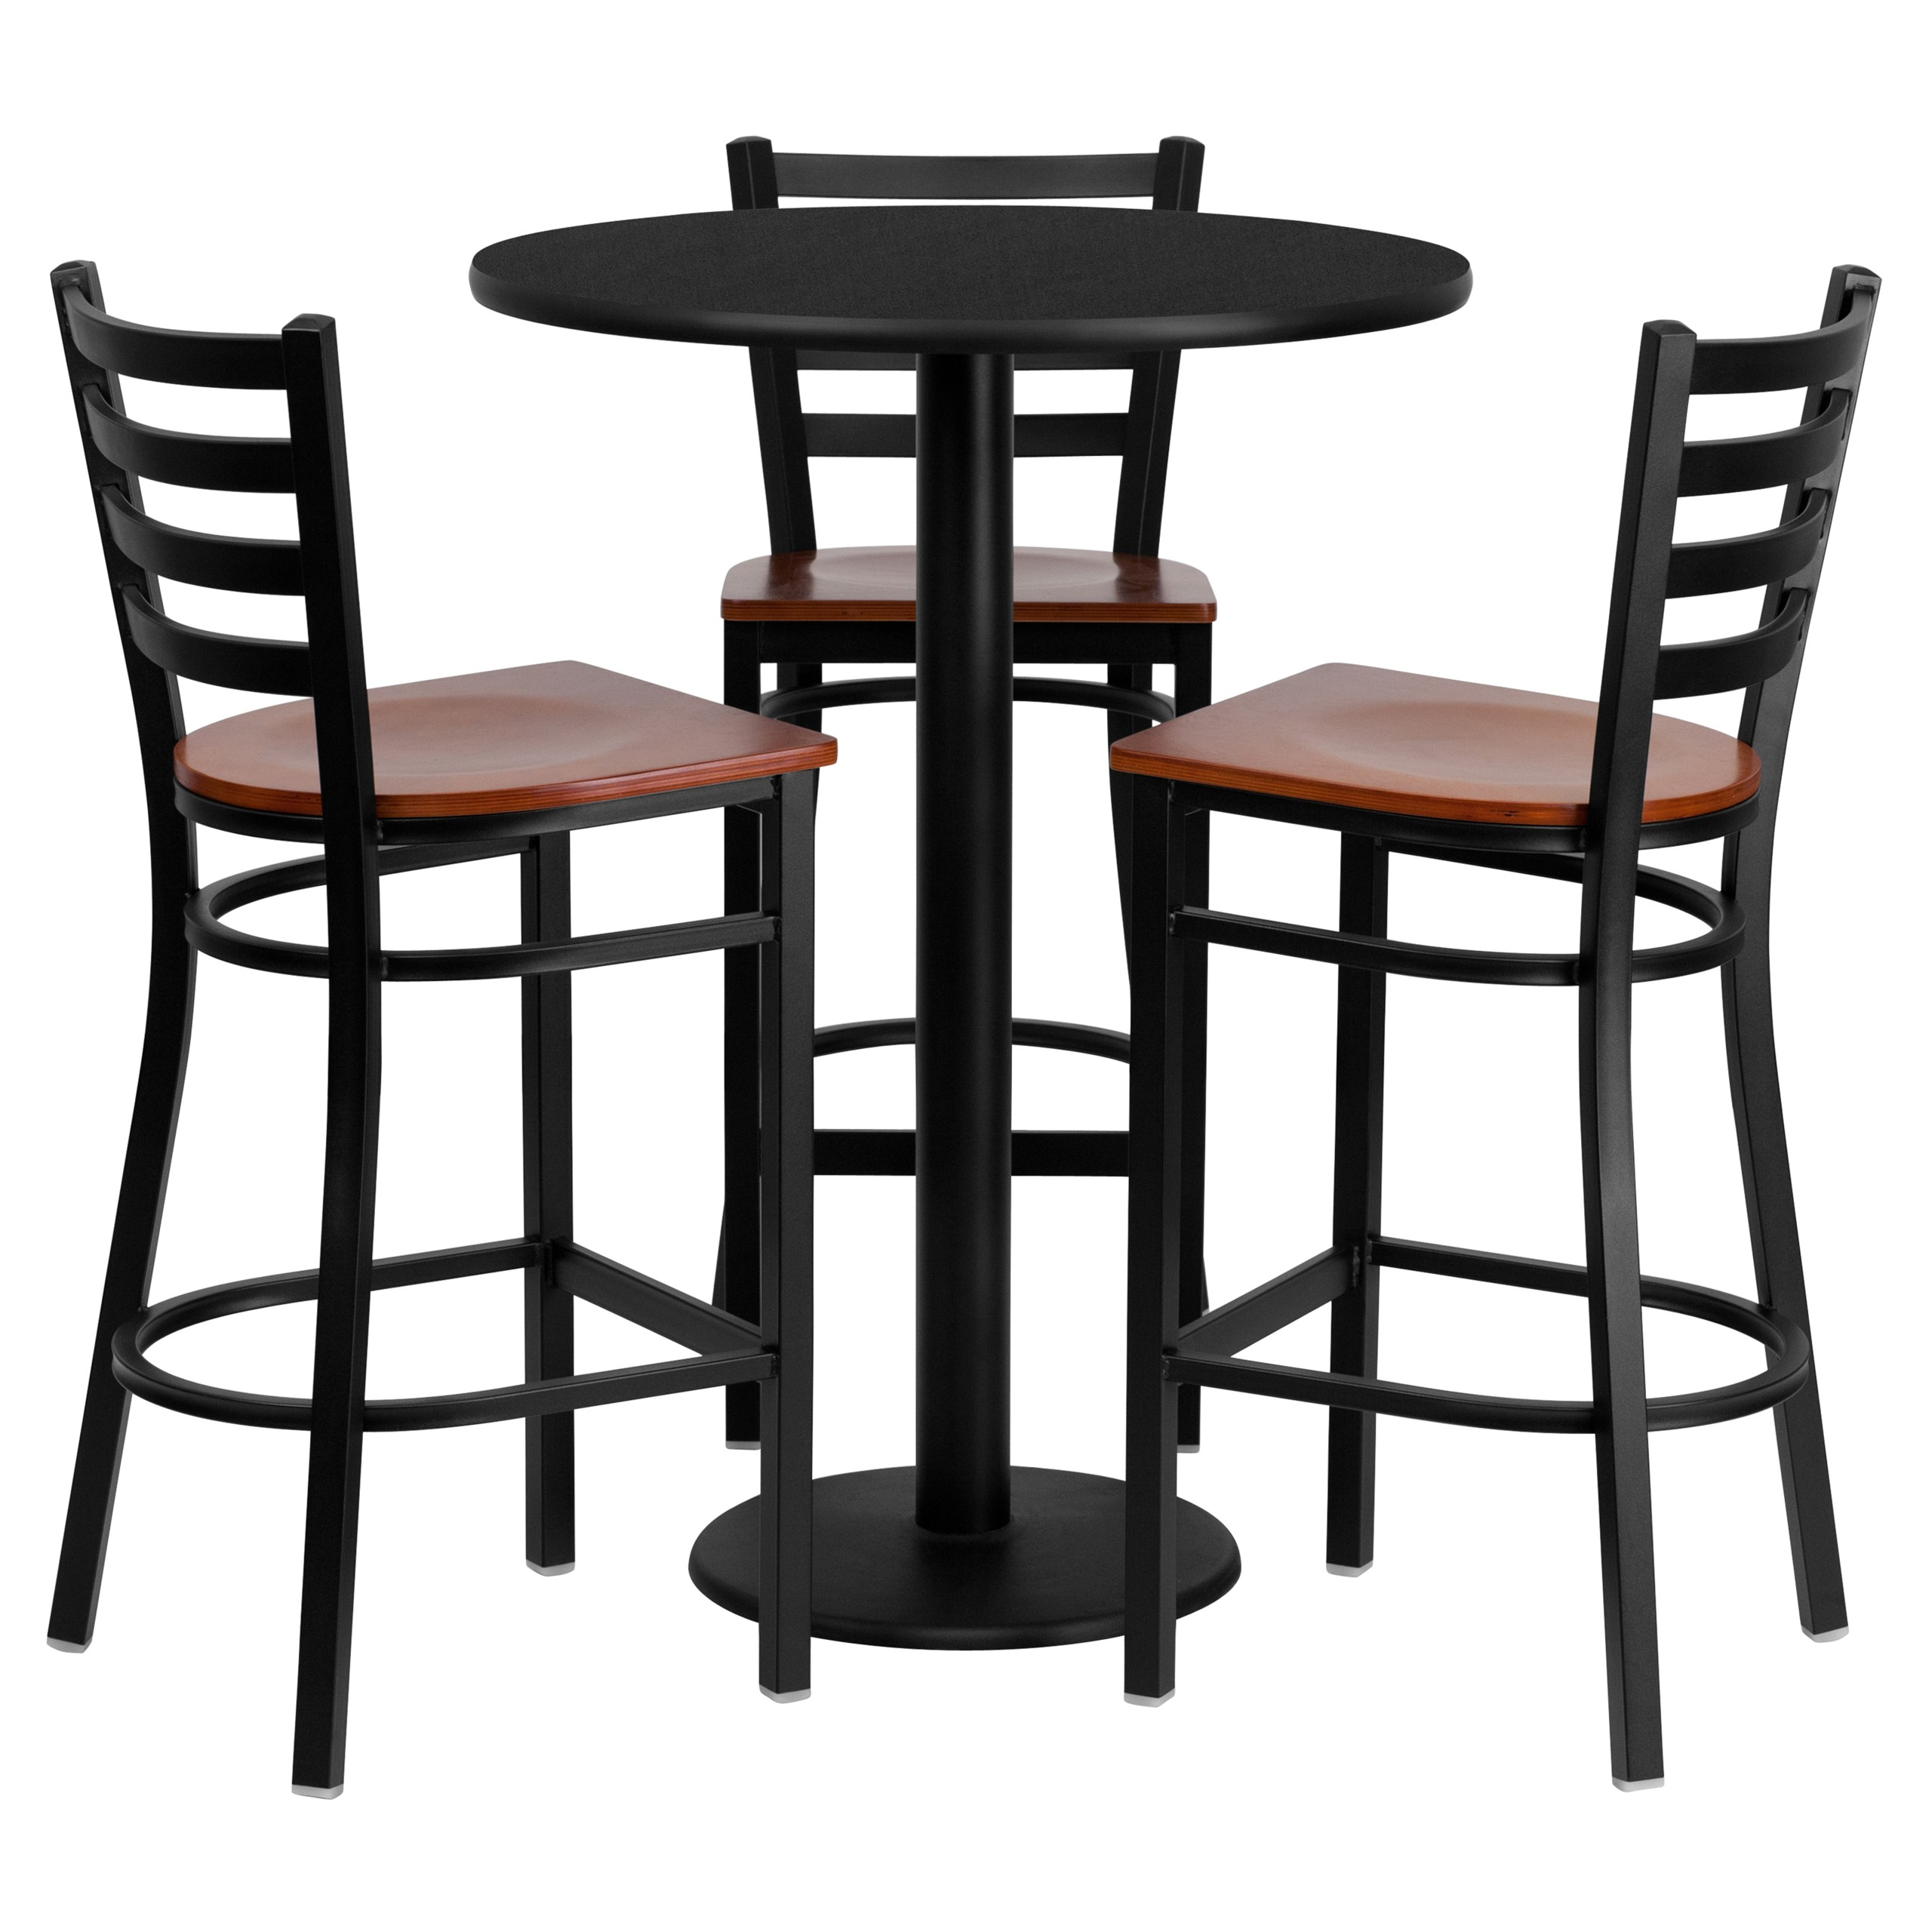 Genial 30u0027u0027 Round Mahogany Table Set With 3 Grid Back Metal Bar Stools